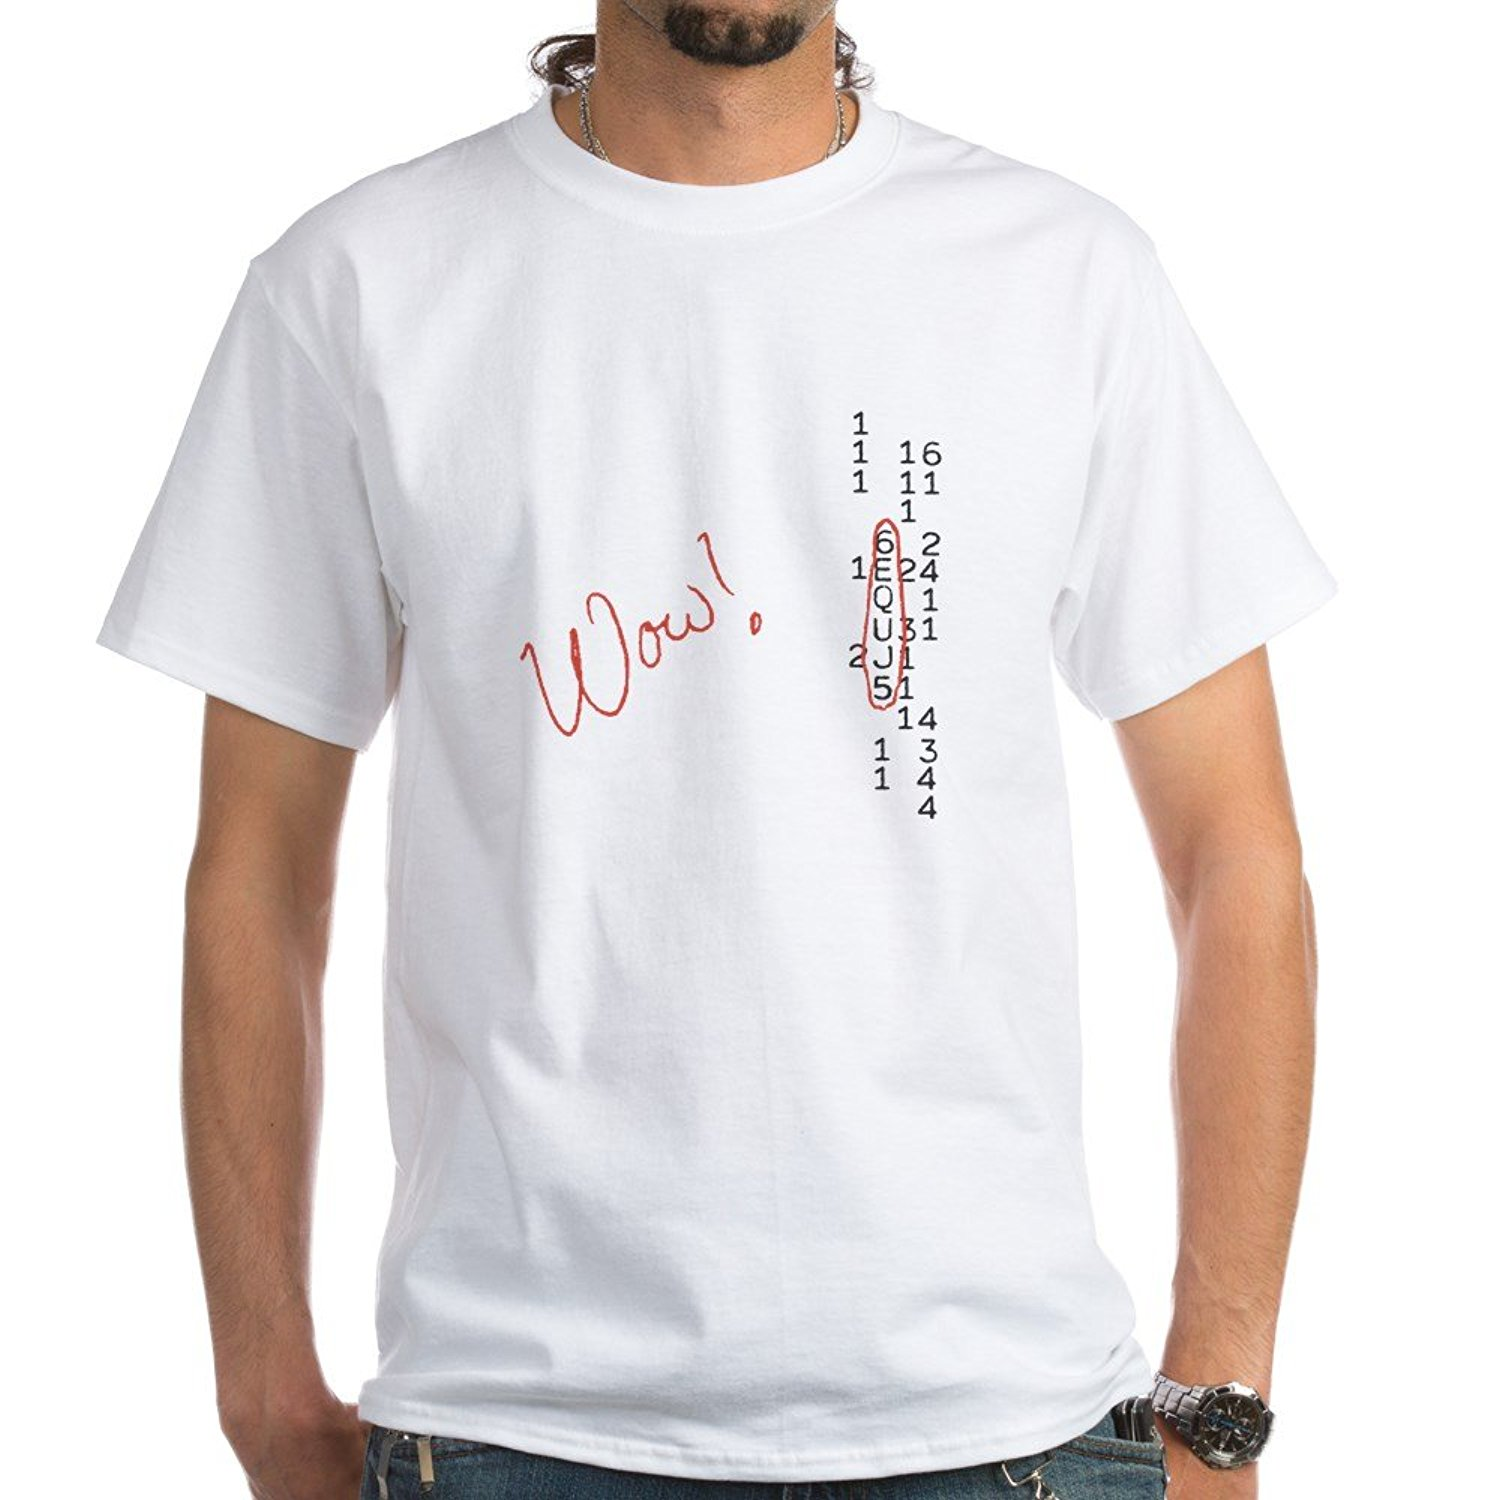 Wow Signal SETI Message T-Shirt - 100% Cotton T-Shirt, White